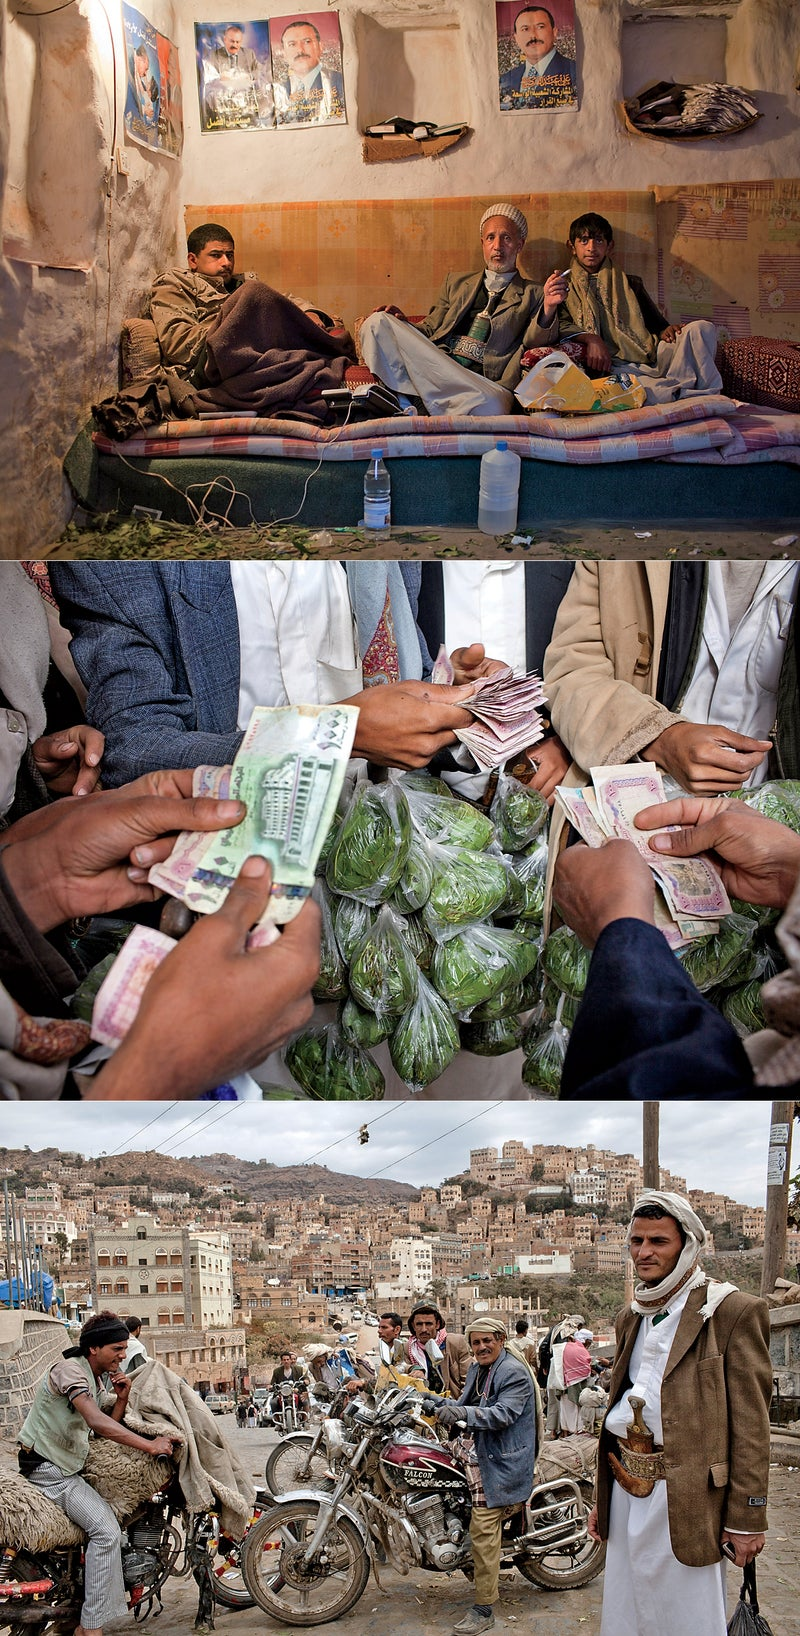 From top: A police checkpoint the village of Kawkaban; the daily khat transaction; makeshift motorcycle taxis for hire in Al Mahweet. Click to enlarge.